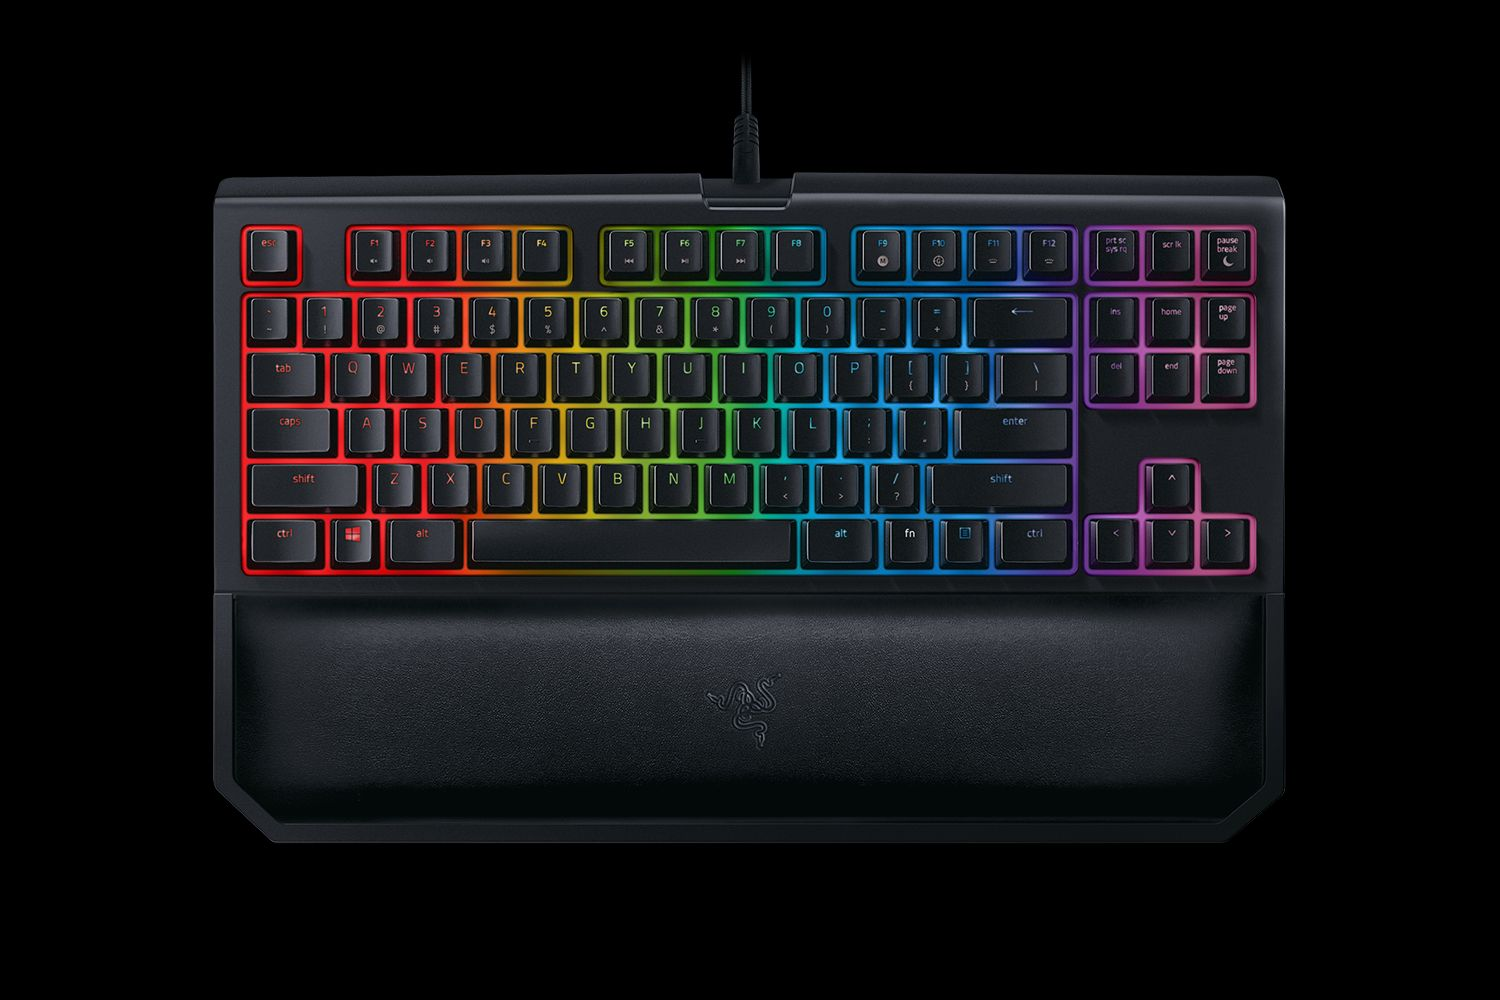 Razer Launches New Tournament Edition Keyboard - Built With Portability and Speed in Mind